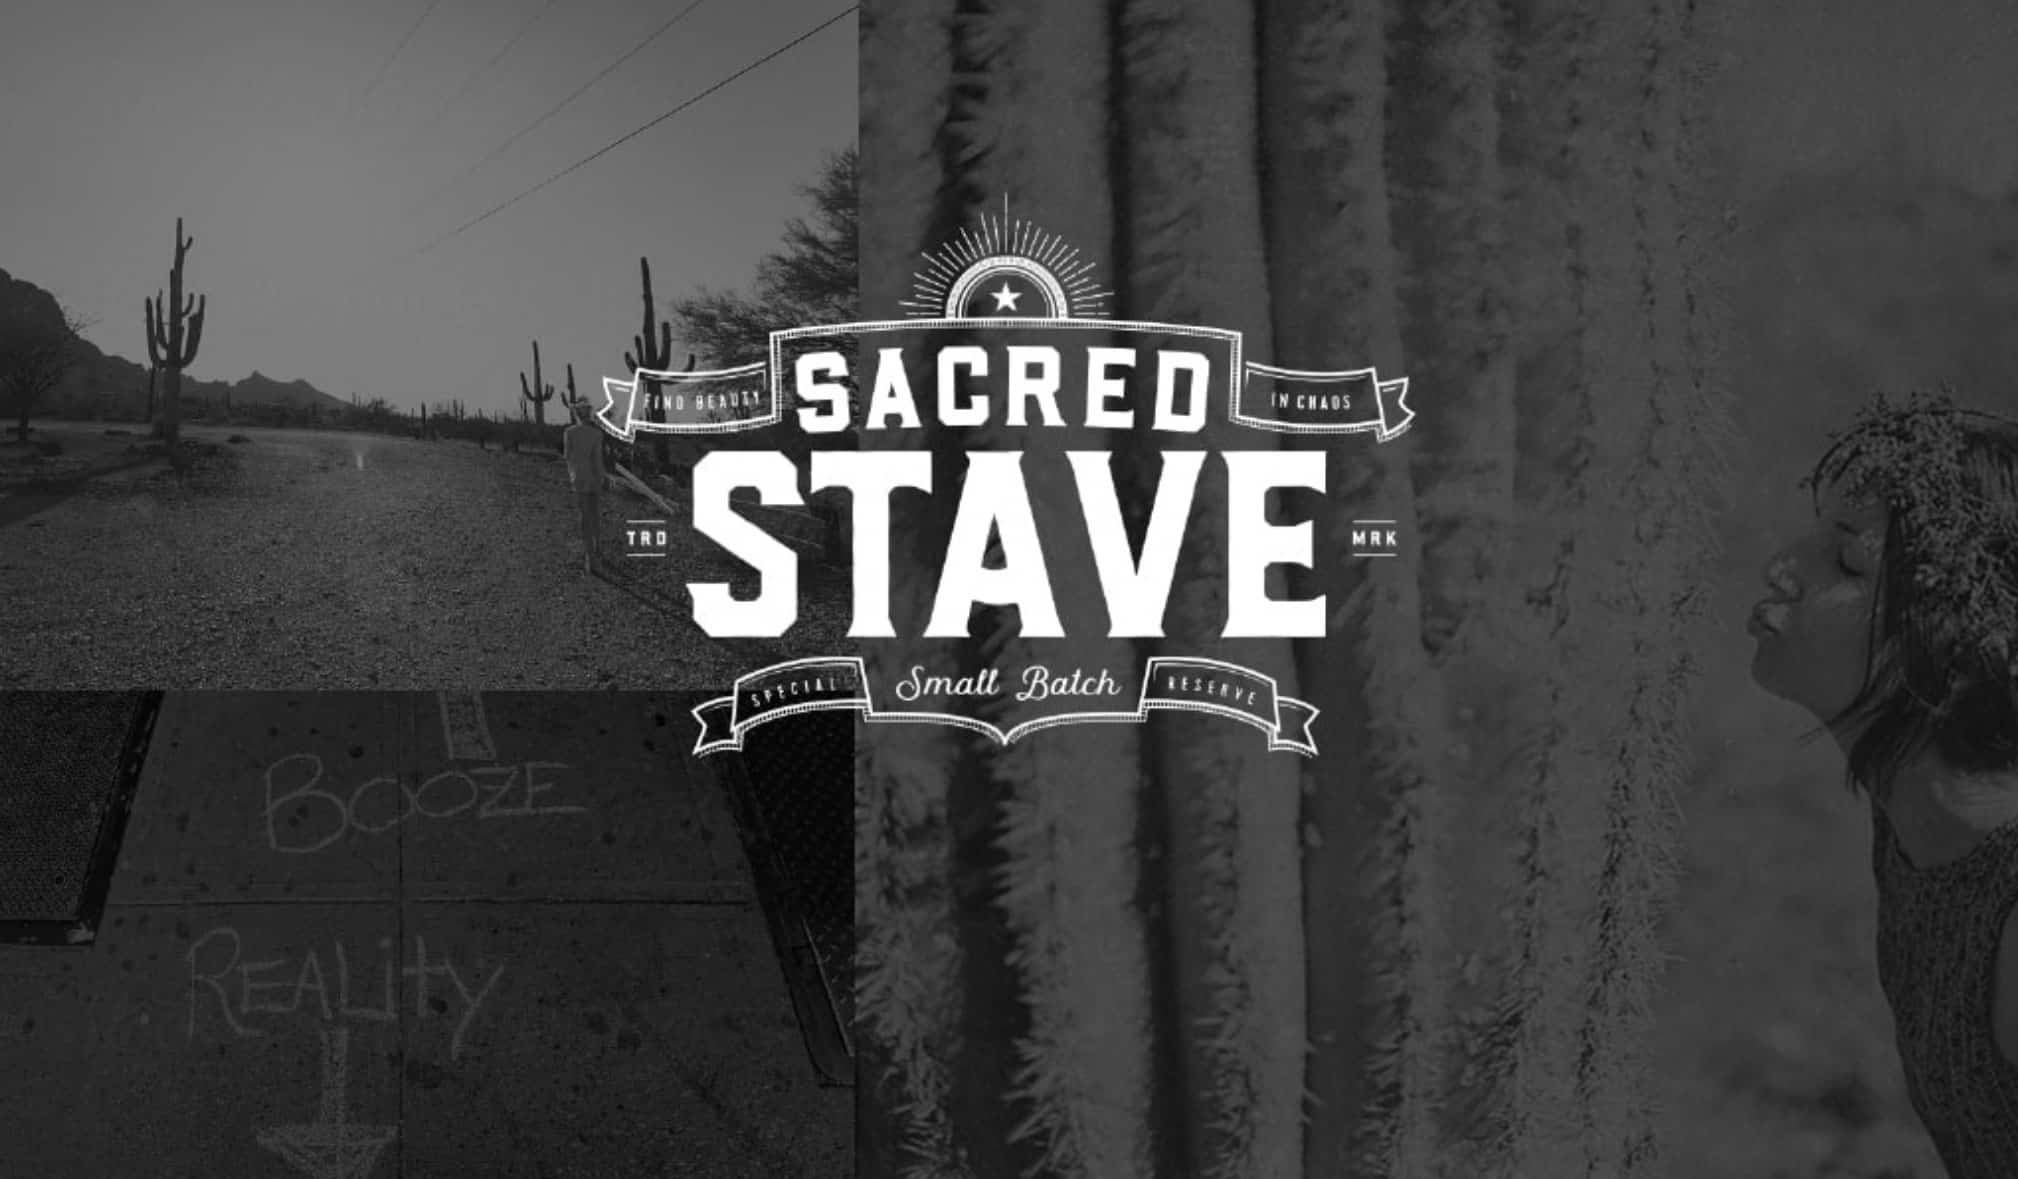 Sacred Stave by SanTan Brewing Company | Case Studies | Commit Agency